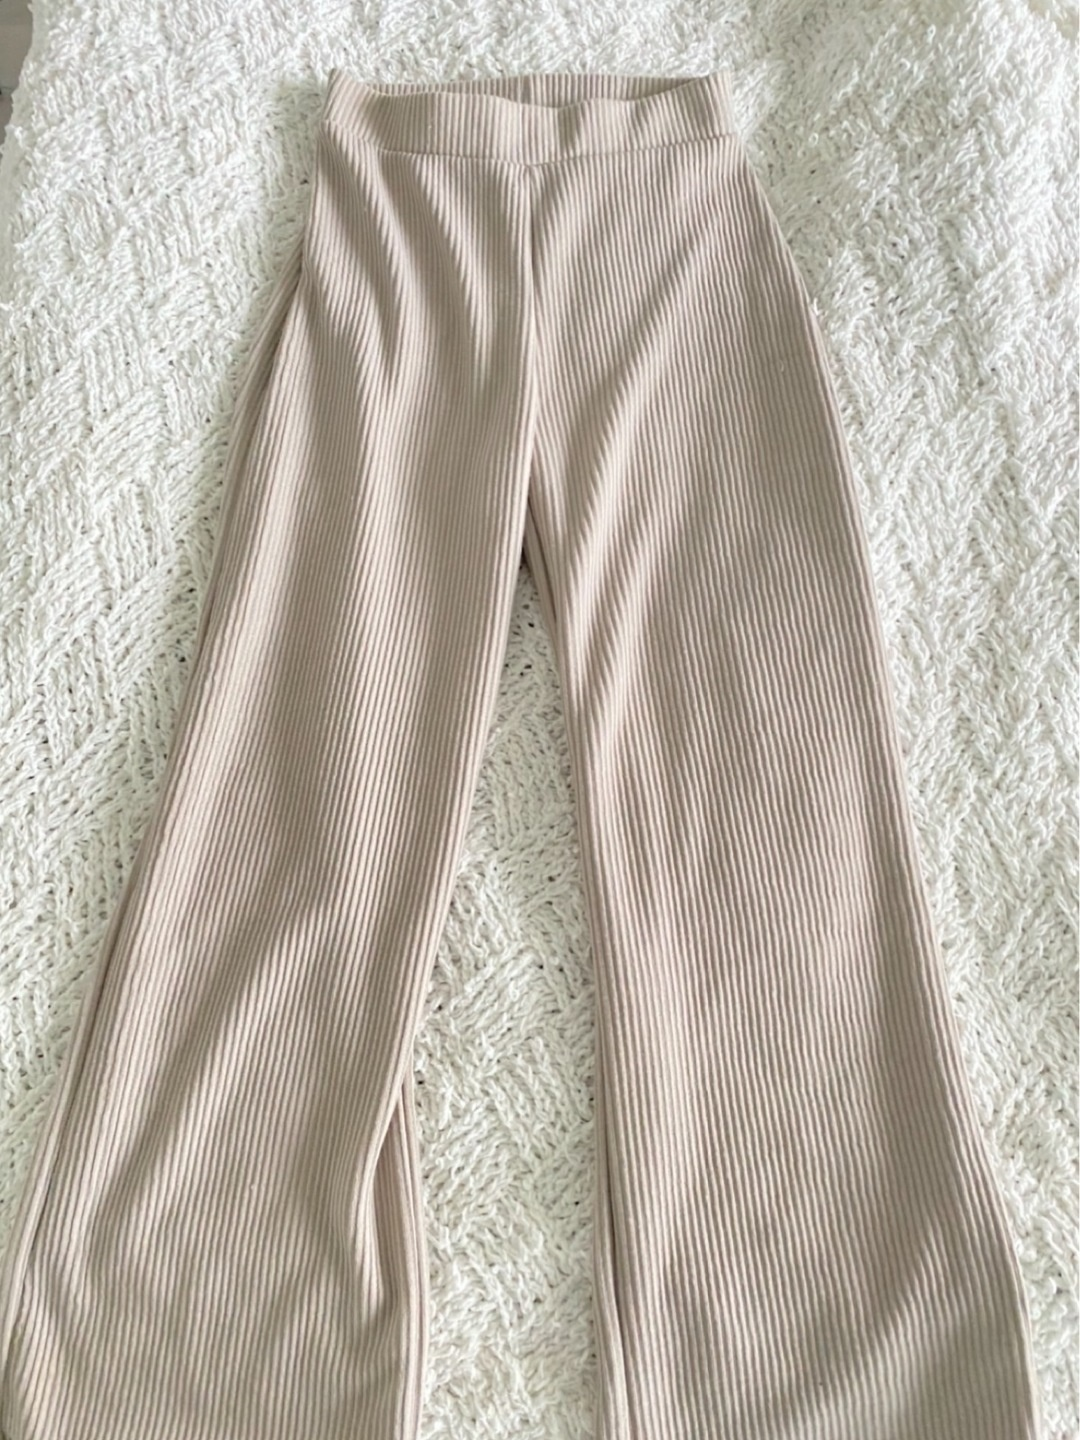 Women's trousers & jeans - NLY|TREND photo 2